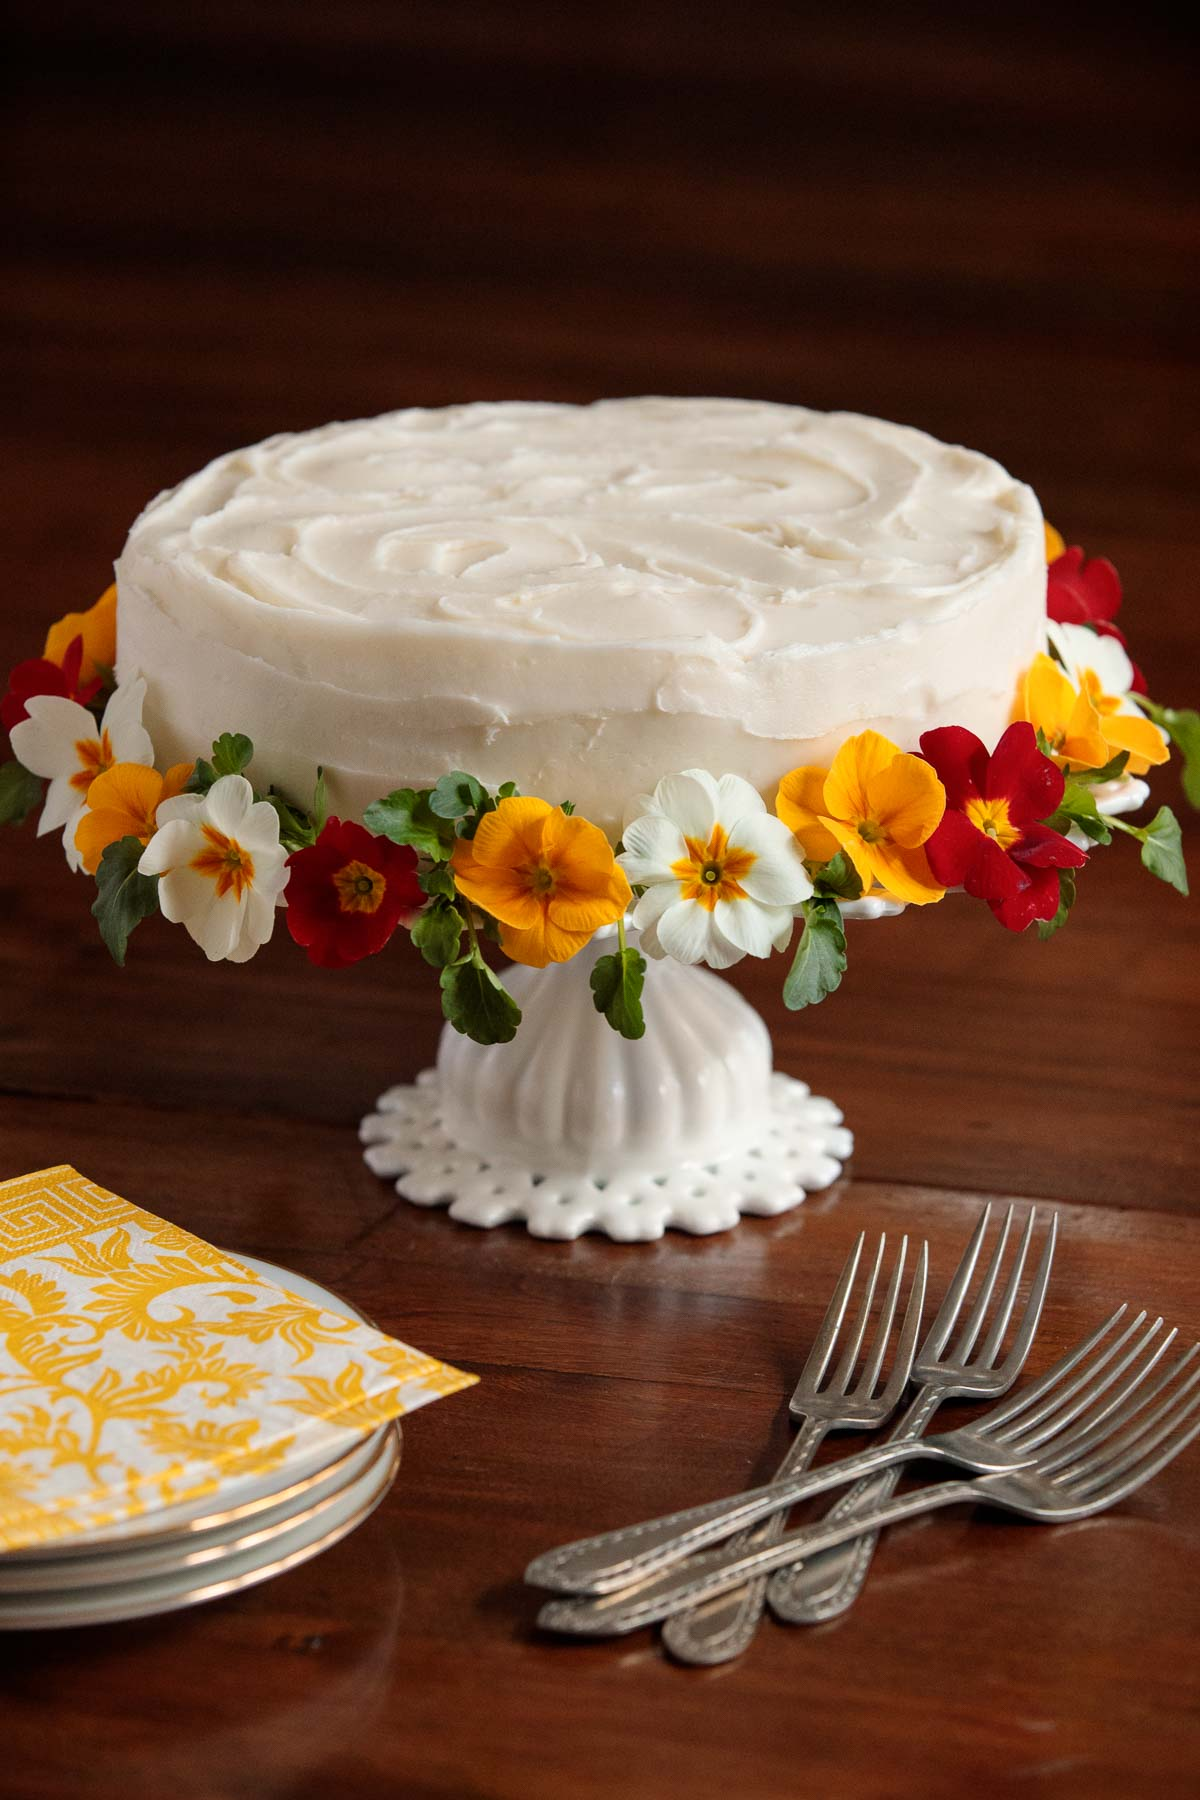 Table photo of an Italian Lemon Ricotta Cake on a white pedestal cake platter, surrounded by pansies and primroses with serving utensils and plates in the foreground.